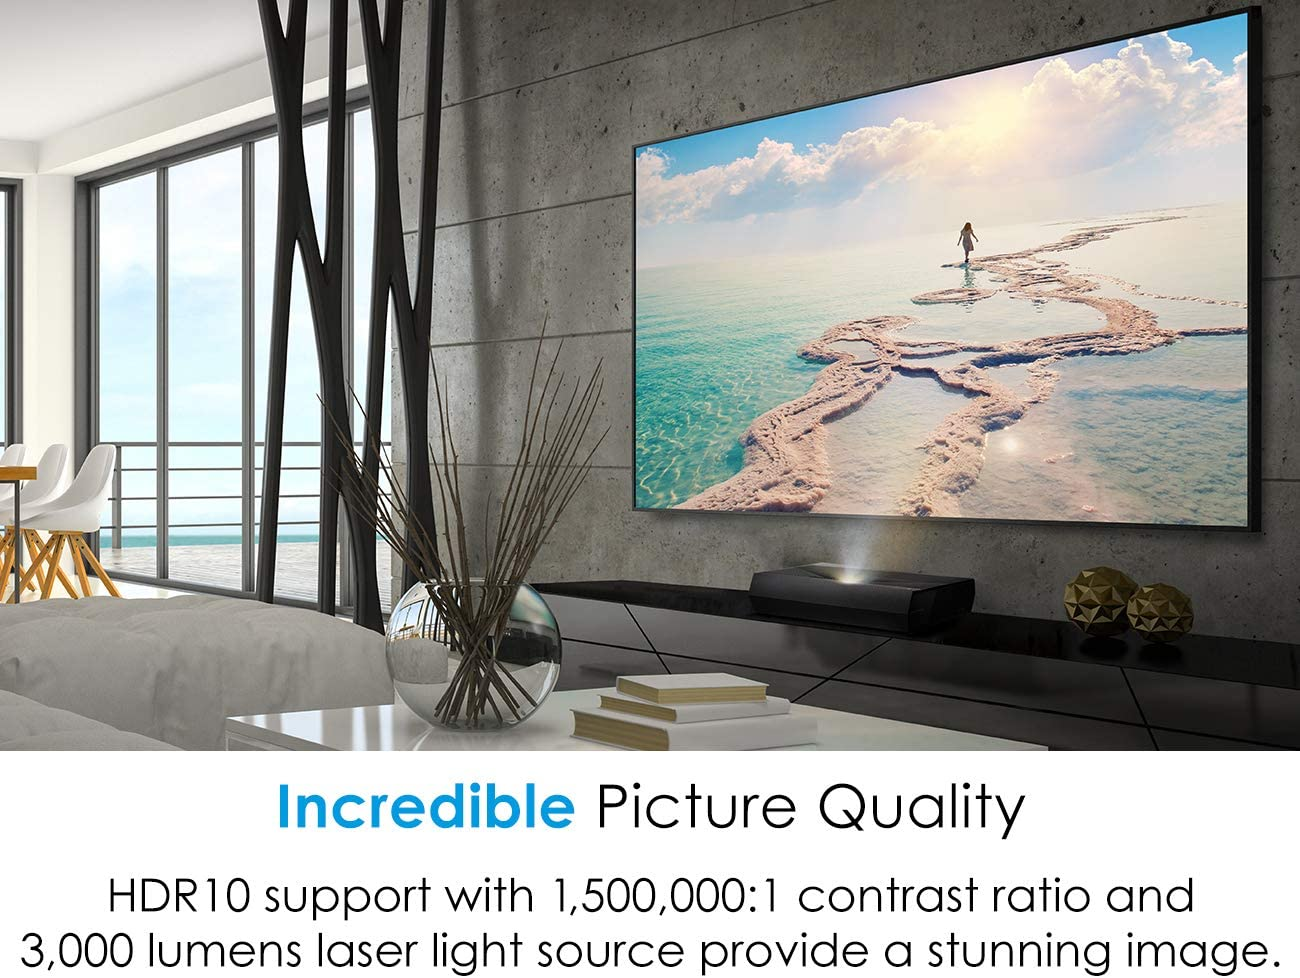 Optoma CinemaX P2 picture quality